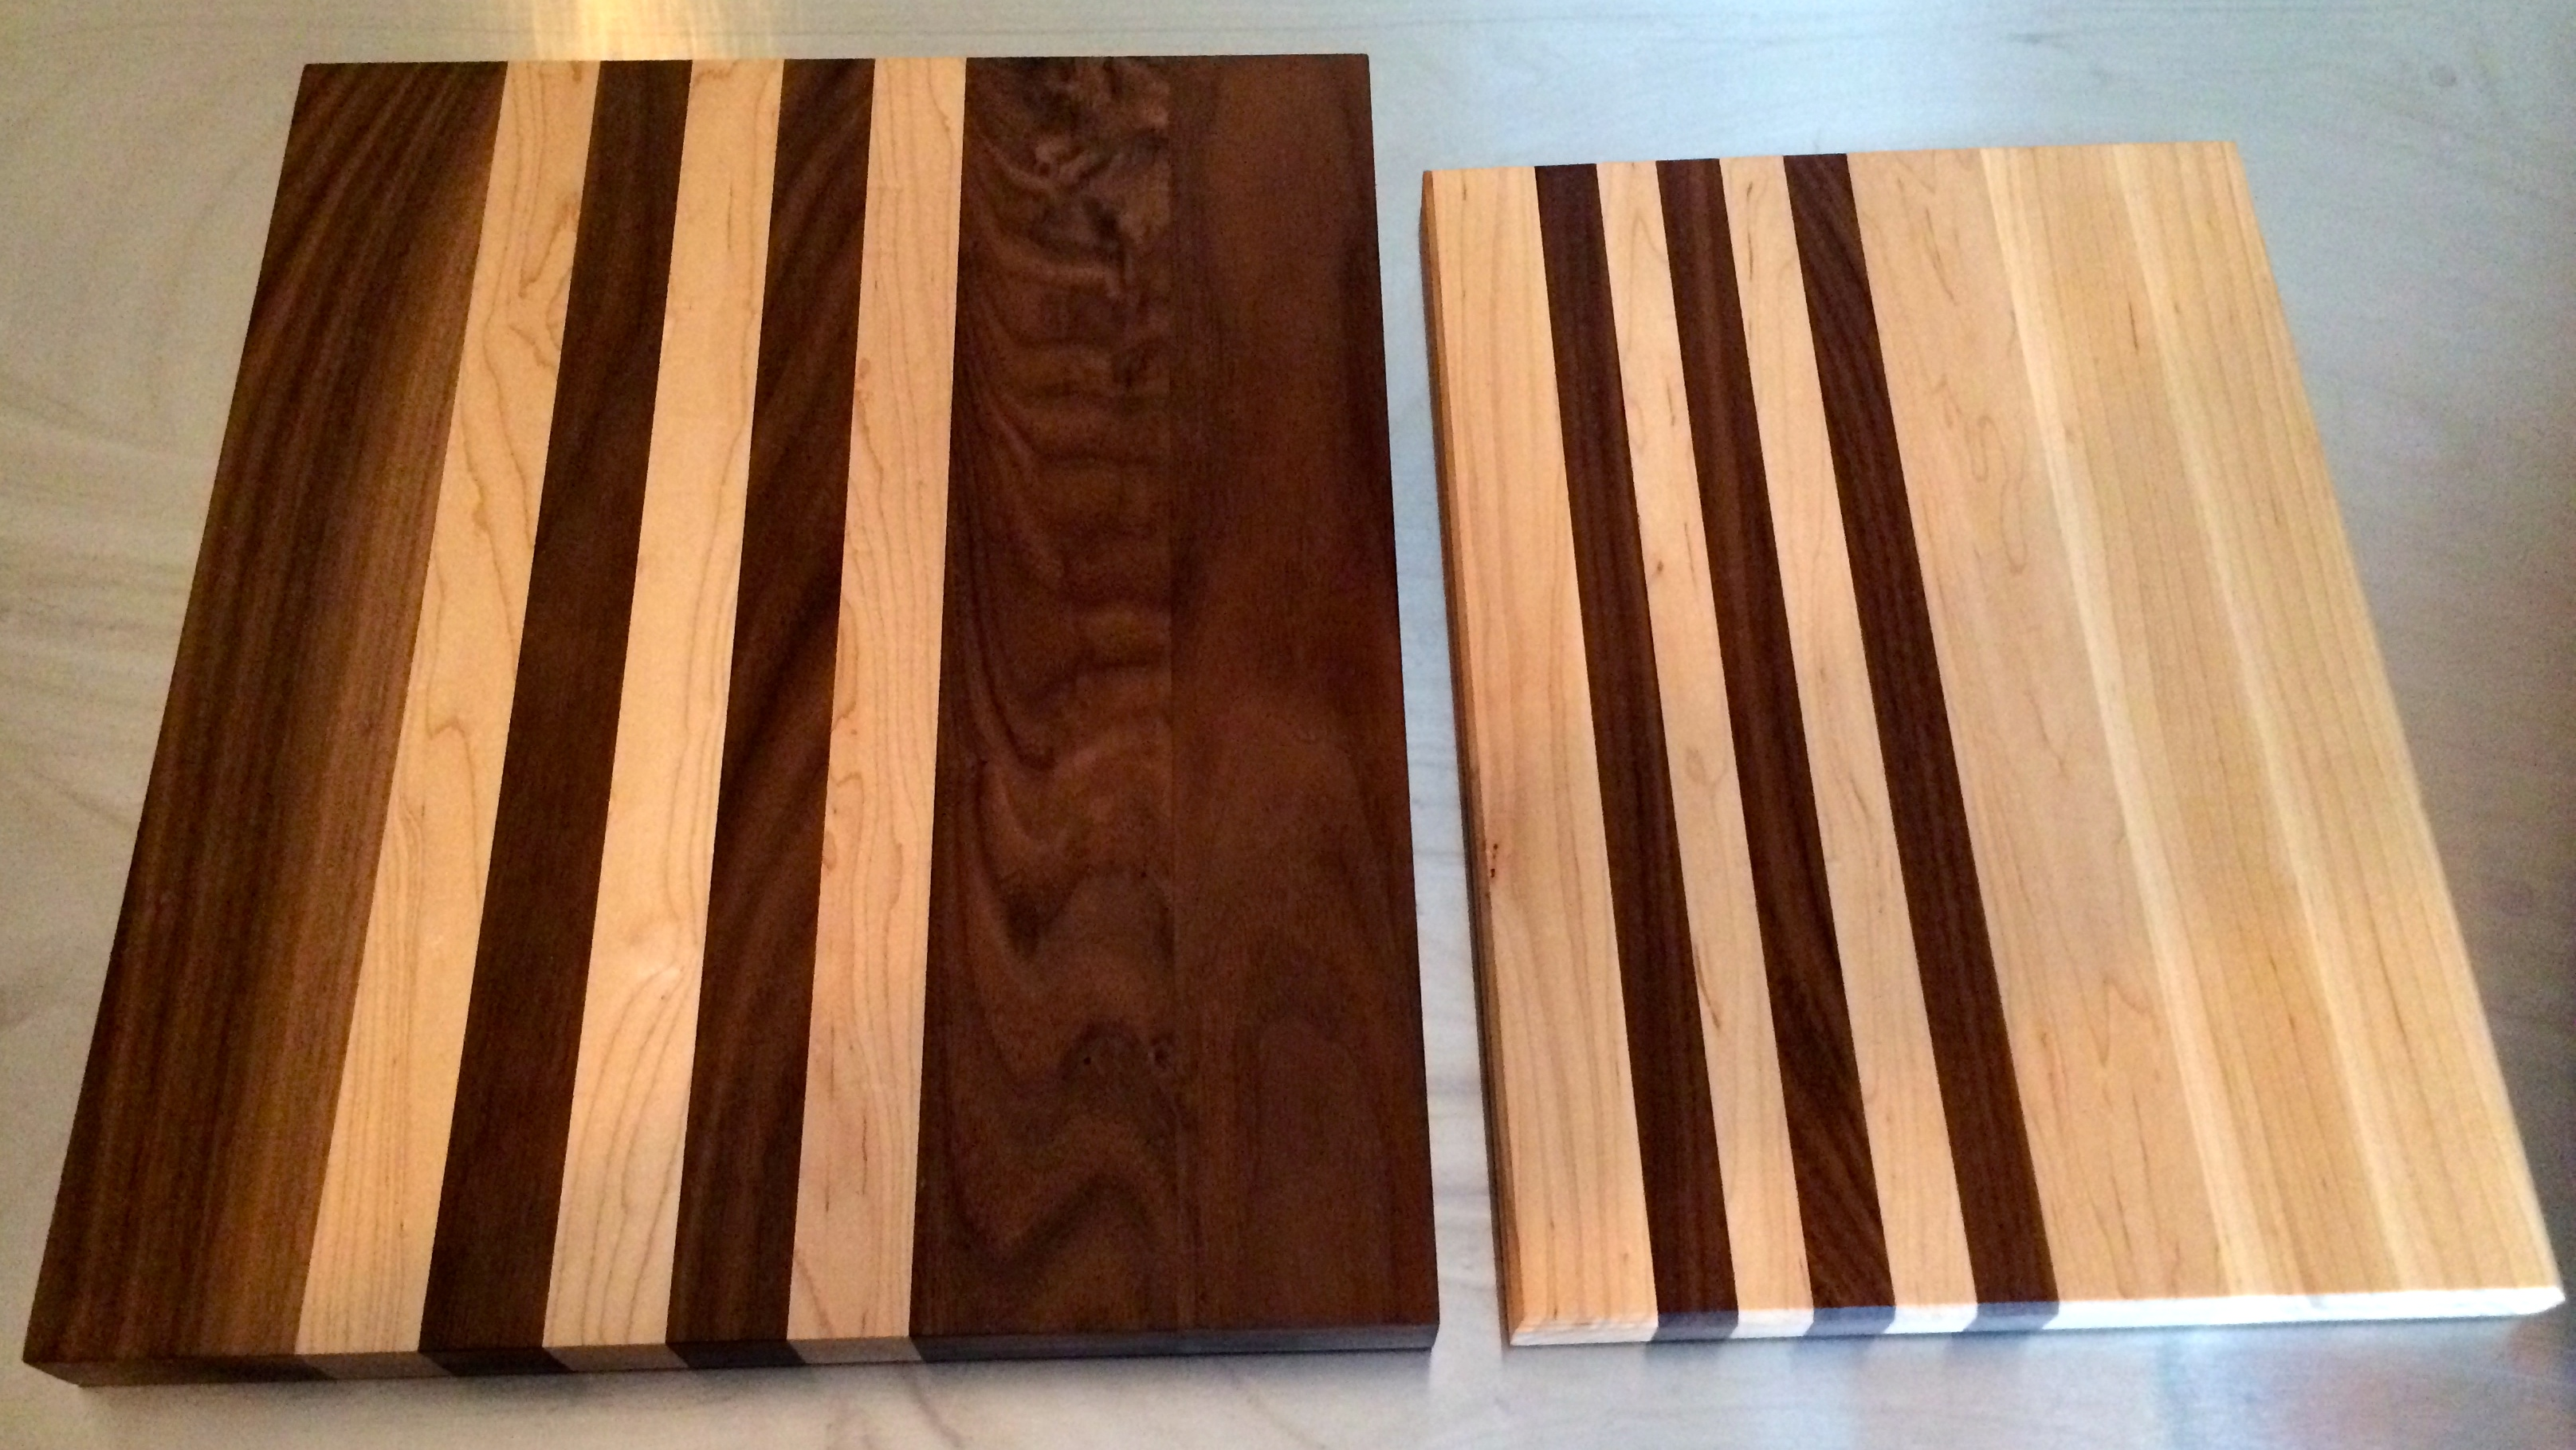 Cutting Boards - (I Made it at Techshop)